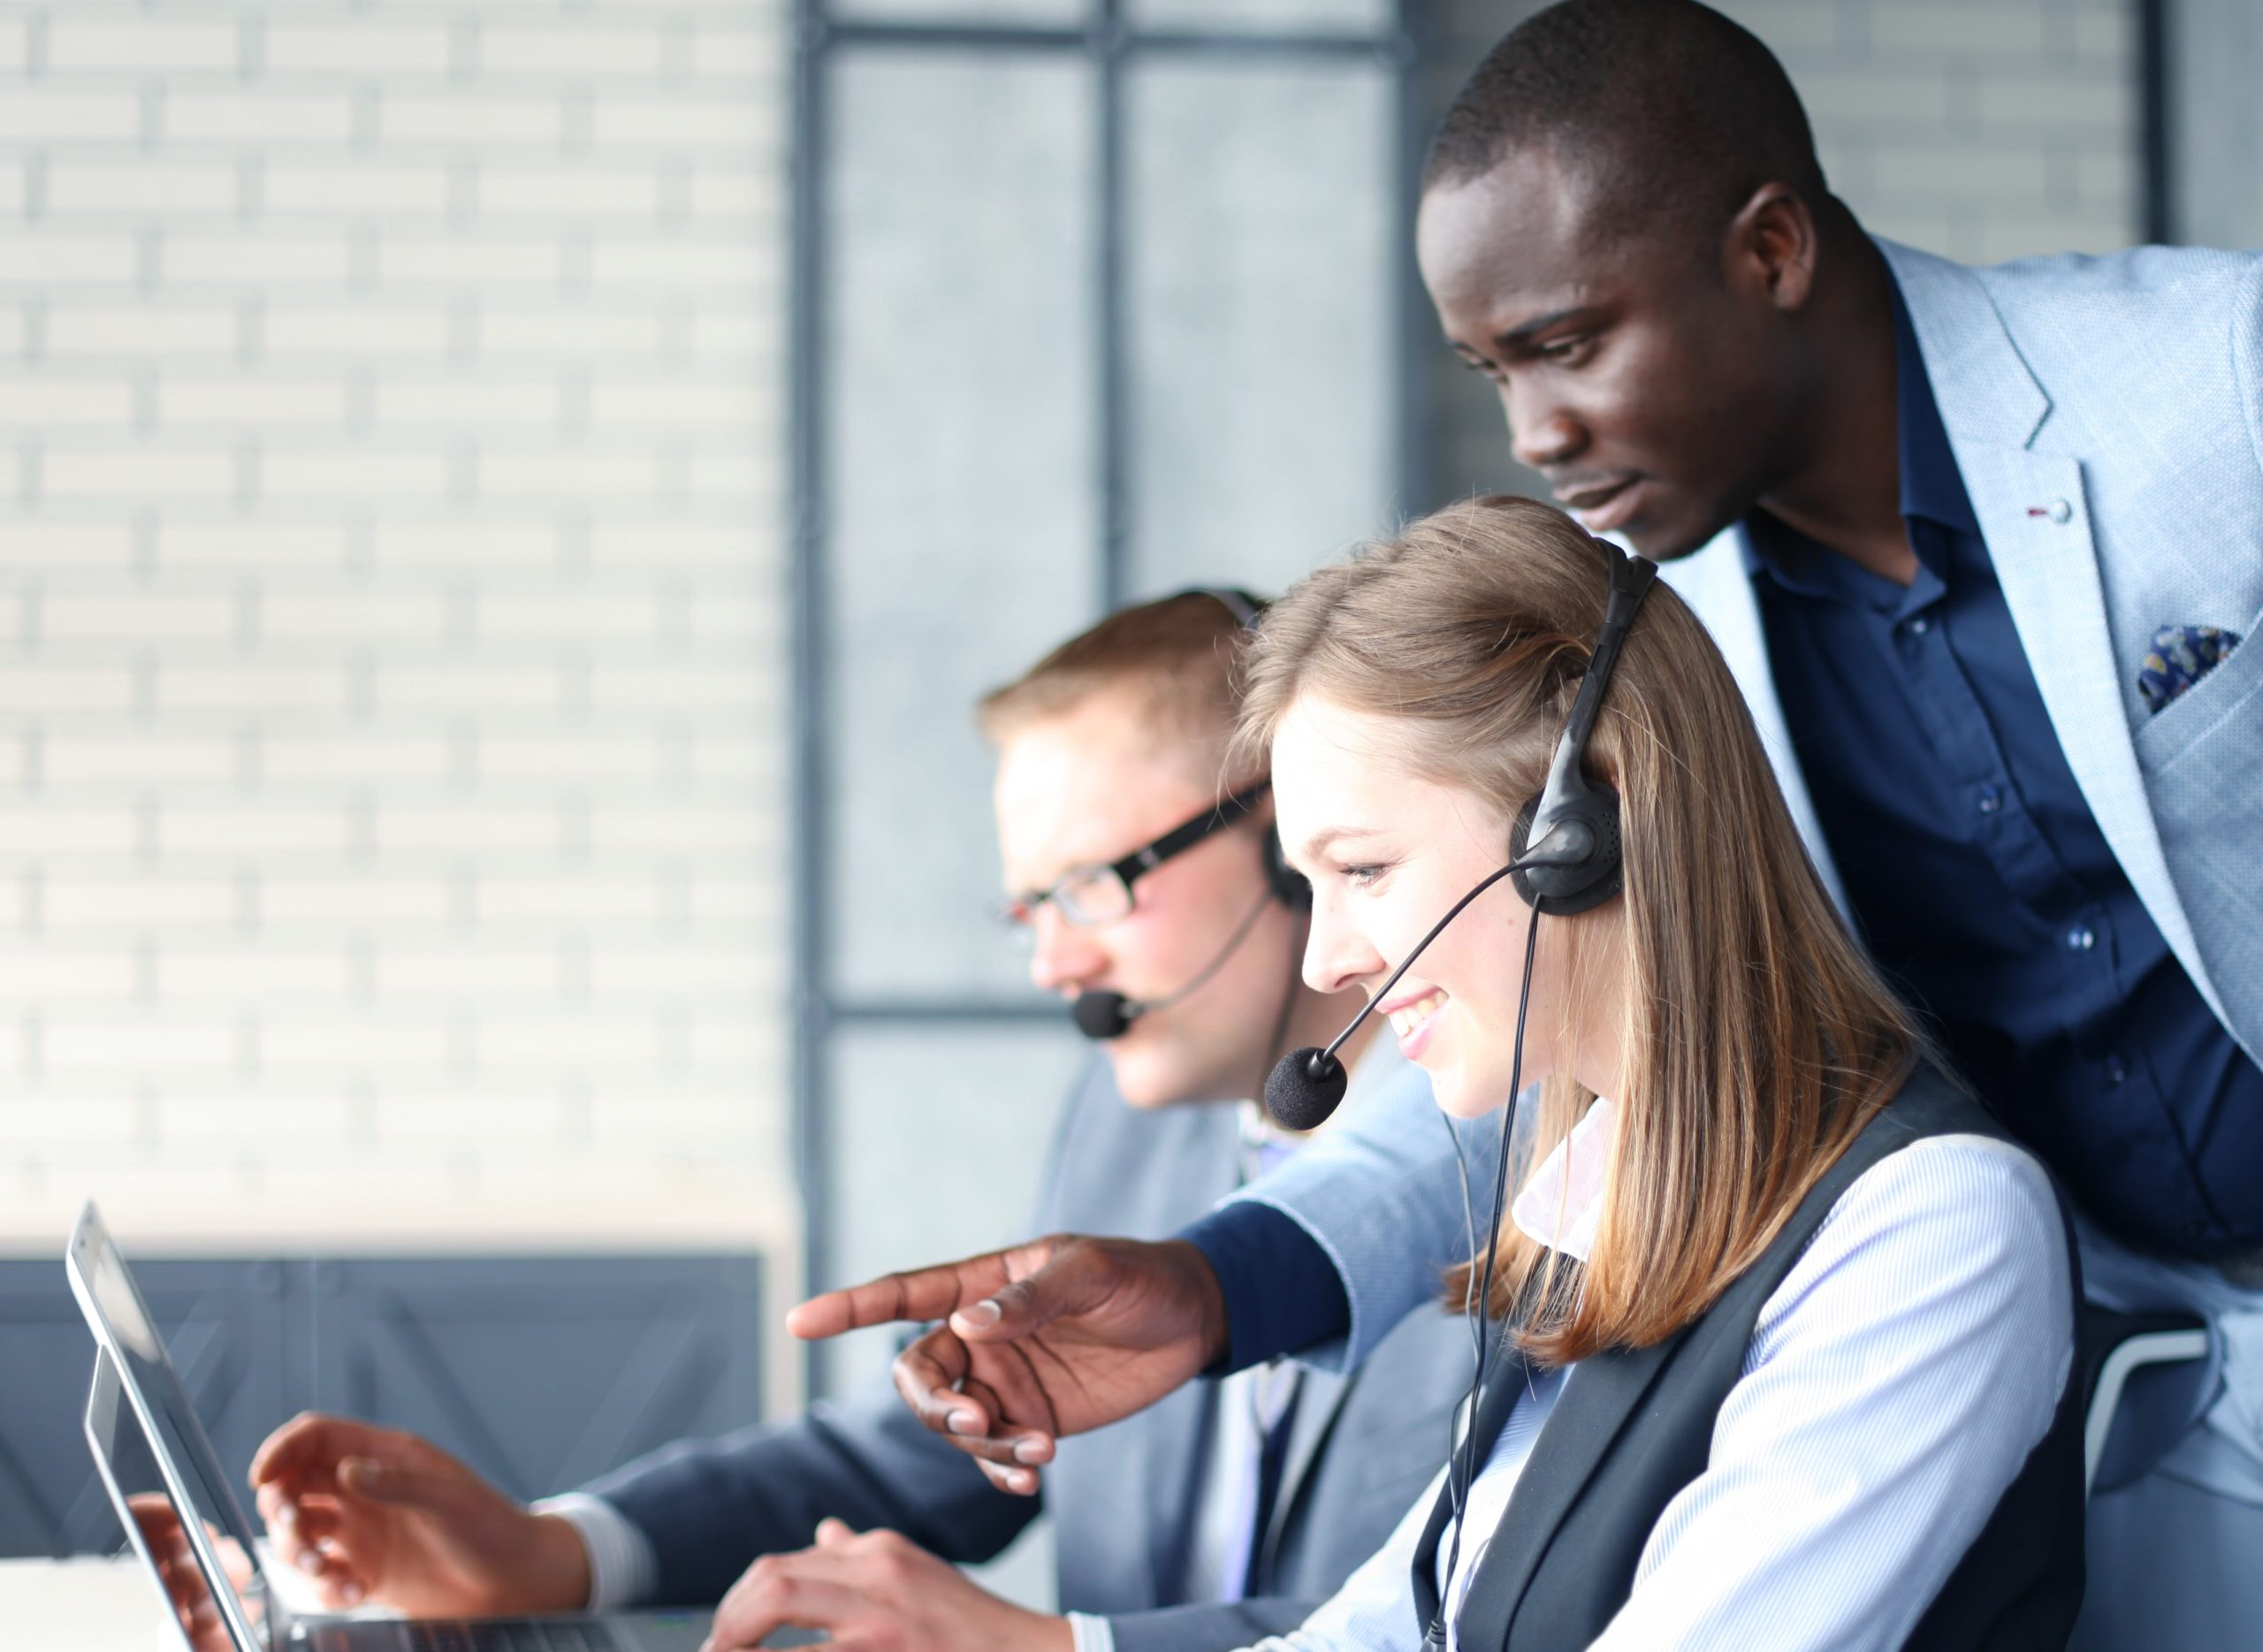 Manager helping call centre employees.